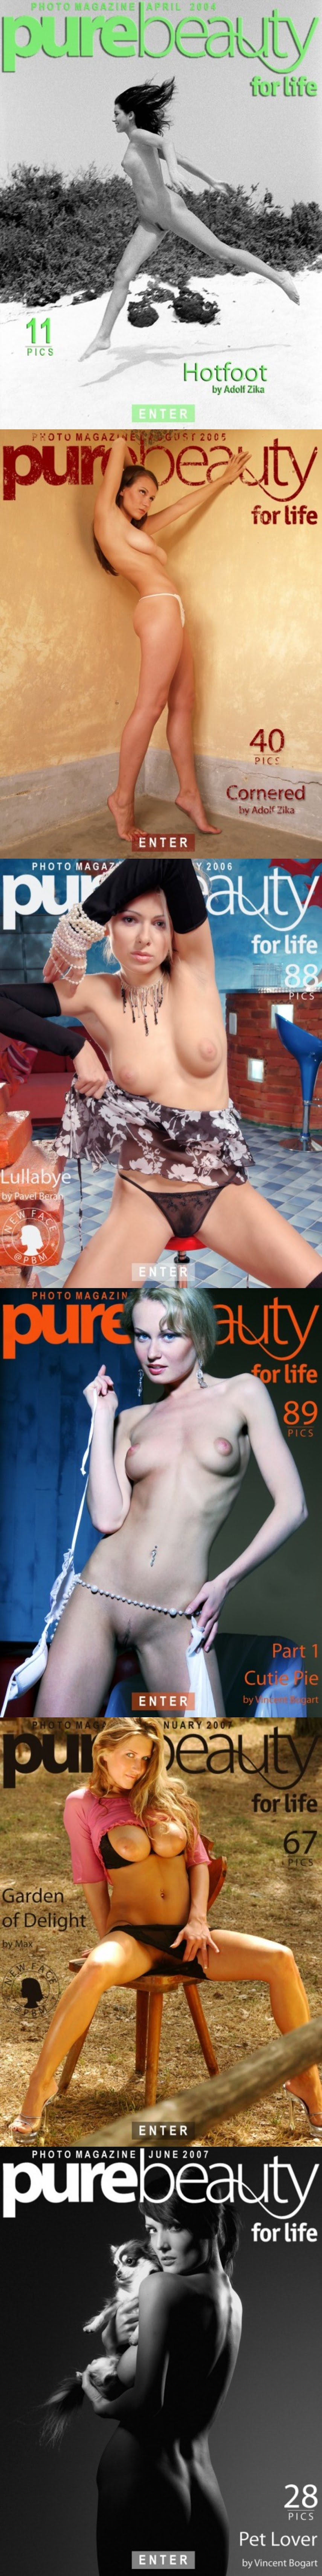 PureBeautyMag_covers.zip-jk- PureBeautyMag PBM  - 2004-04-08 - #s19833 - Bara - Free relaxation - 2560px purebeautymag 08150